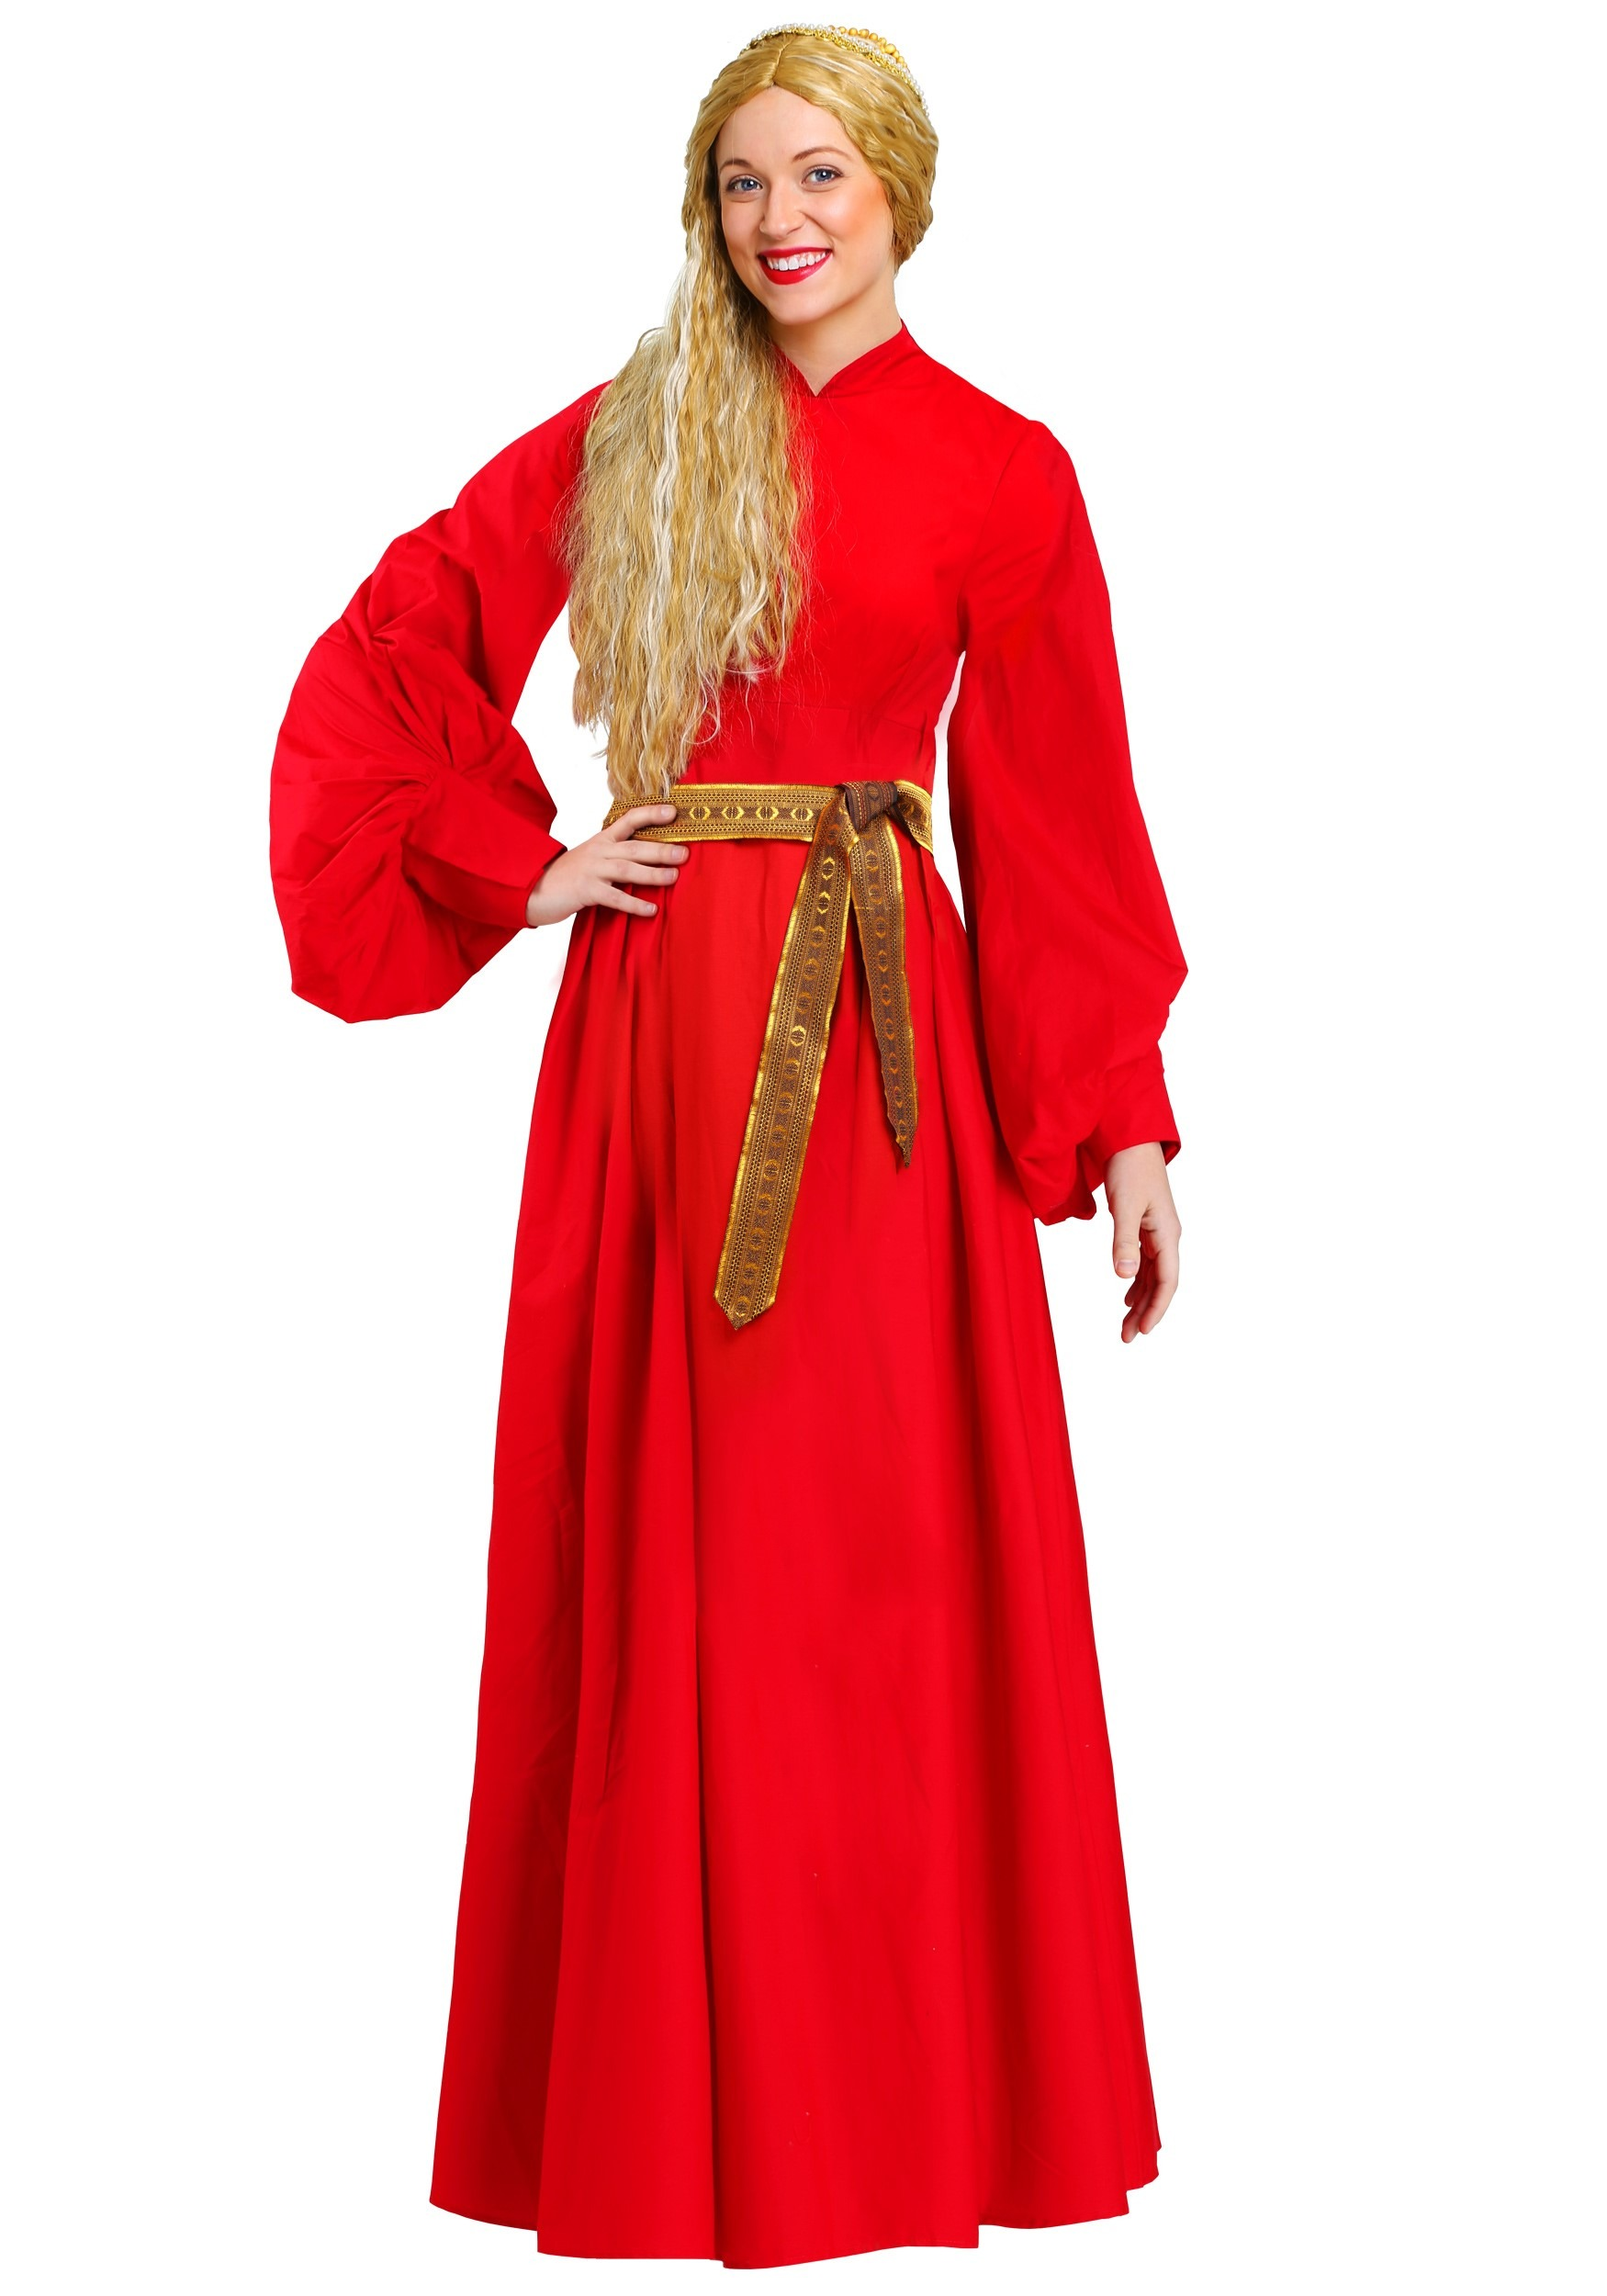 Buttercup Peasant Dress Costume in Women's Plus Size